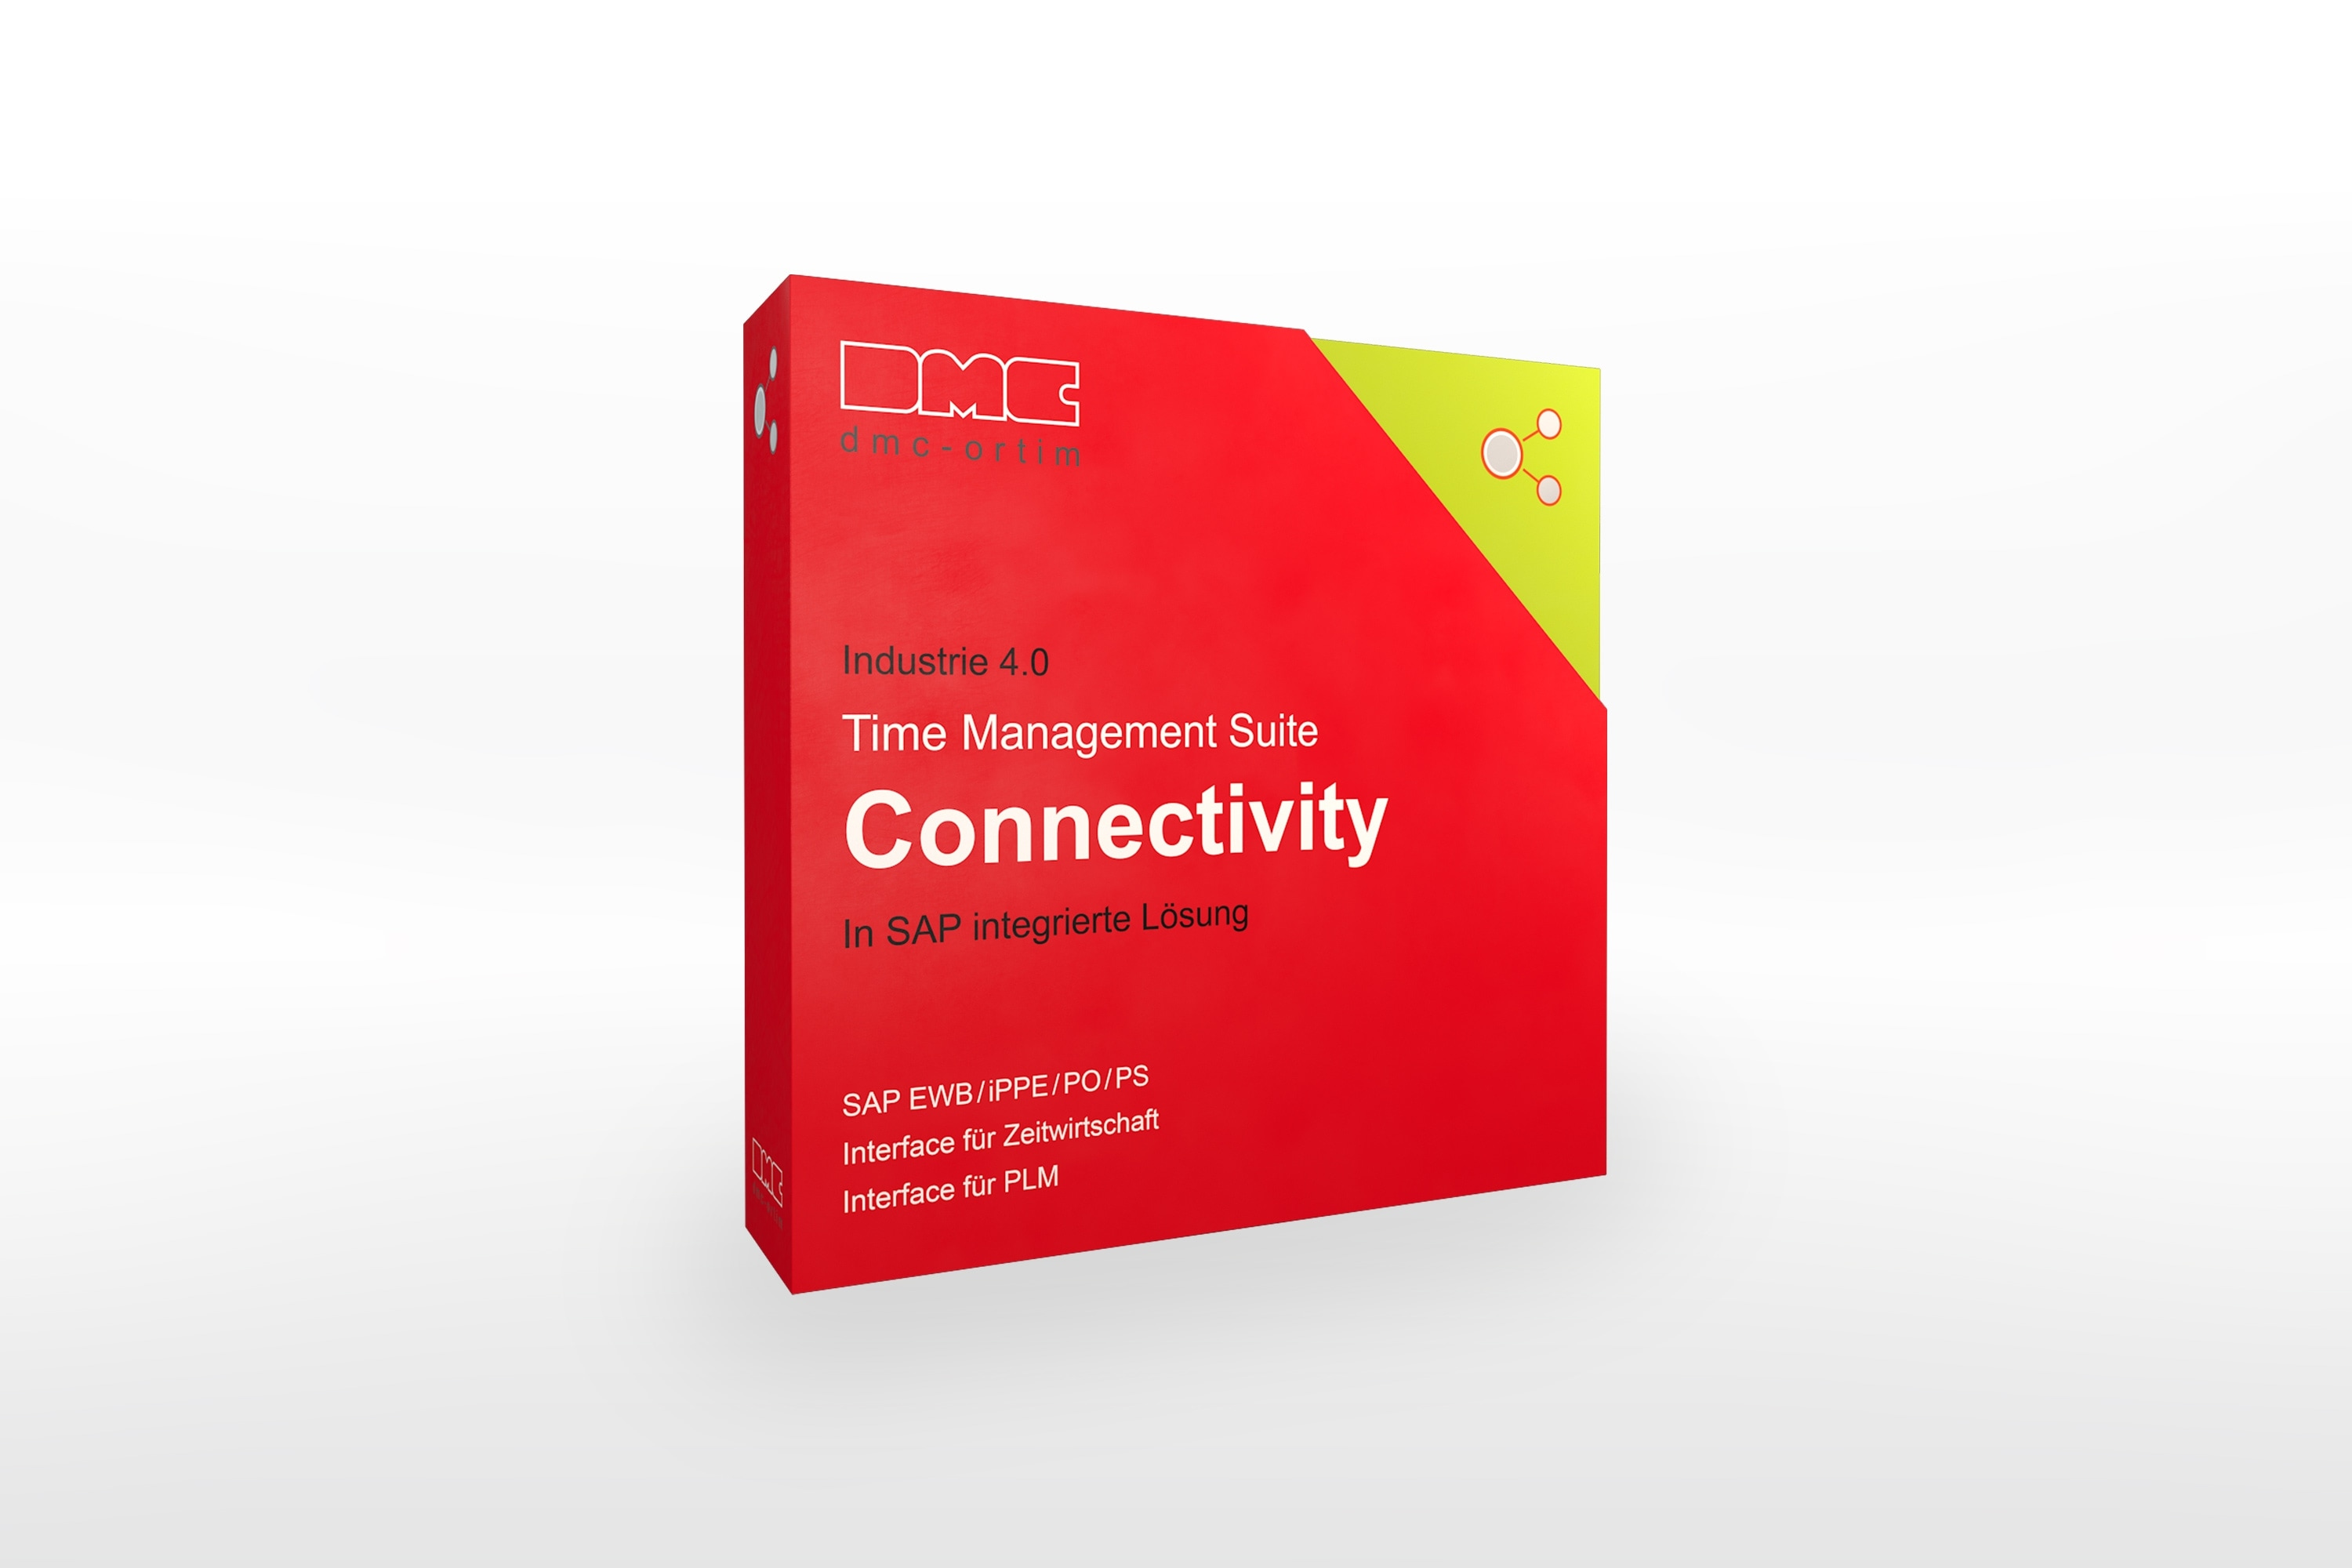 maxfath-dmc-group-muenchen-redesign-packaging-capp-knowledge-connectivity